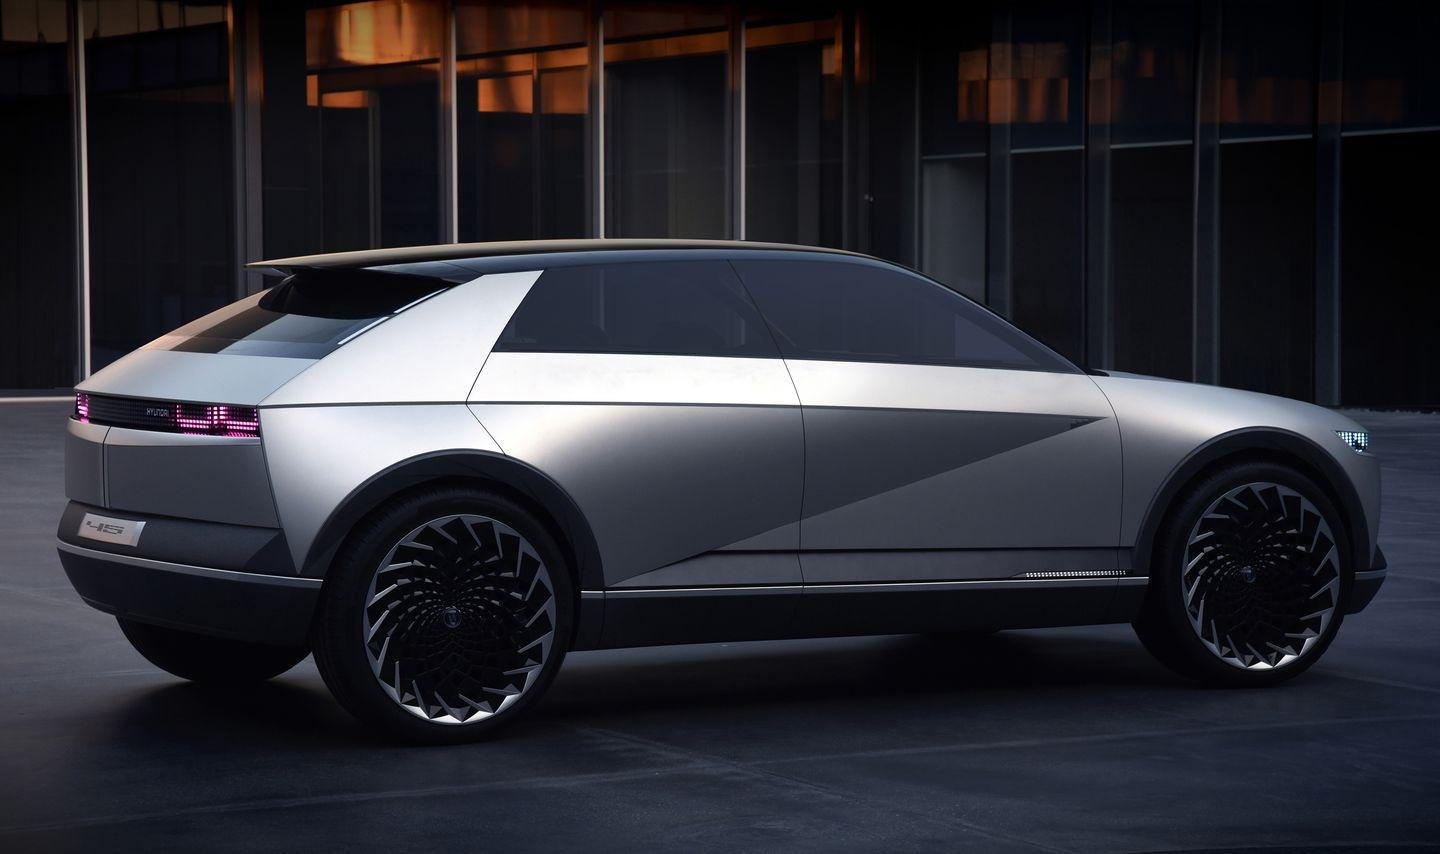 "<p>In homage to Giugiaro's original Hyundai Pony, the Hyundai 45 concept could see production in low volume, as an electric.</p><p><a class=""link rapid-noclick-resp"" href=""https://www.caranddriver.com/news/a28943381/hyundai-45-concept-electric-future-design/"" rel=""nofollow noopener"" target=""_blank"" data-ylk=""slk:More on Hyundai 45 Concept"">More on Hyundai 45 Concept</a></p>"